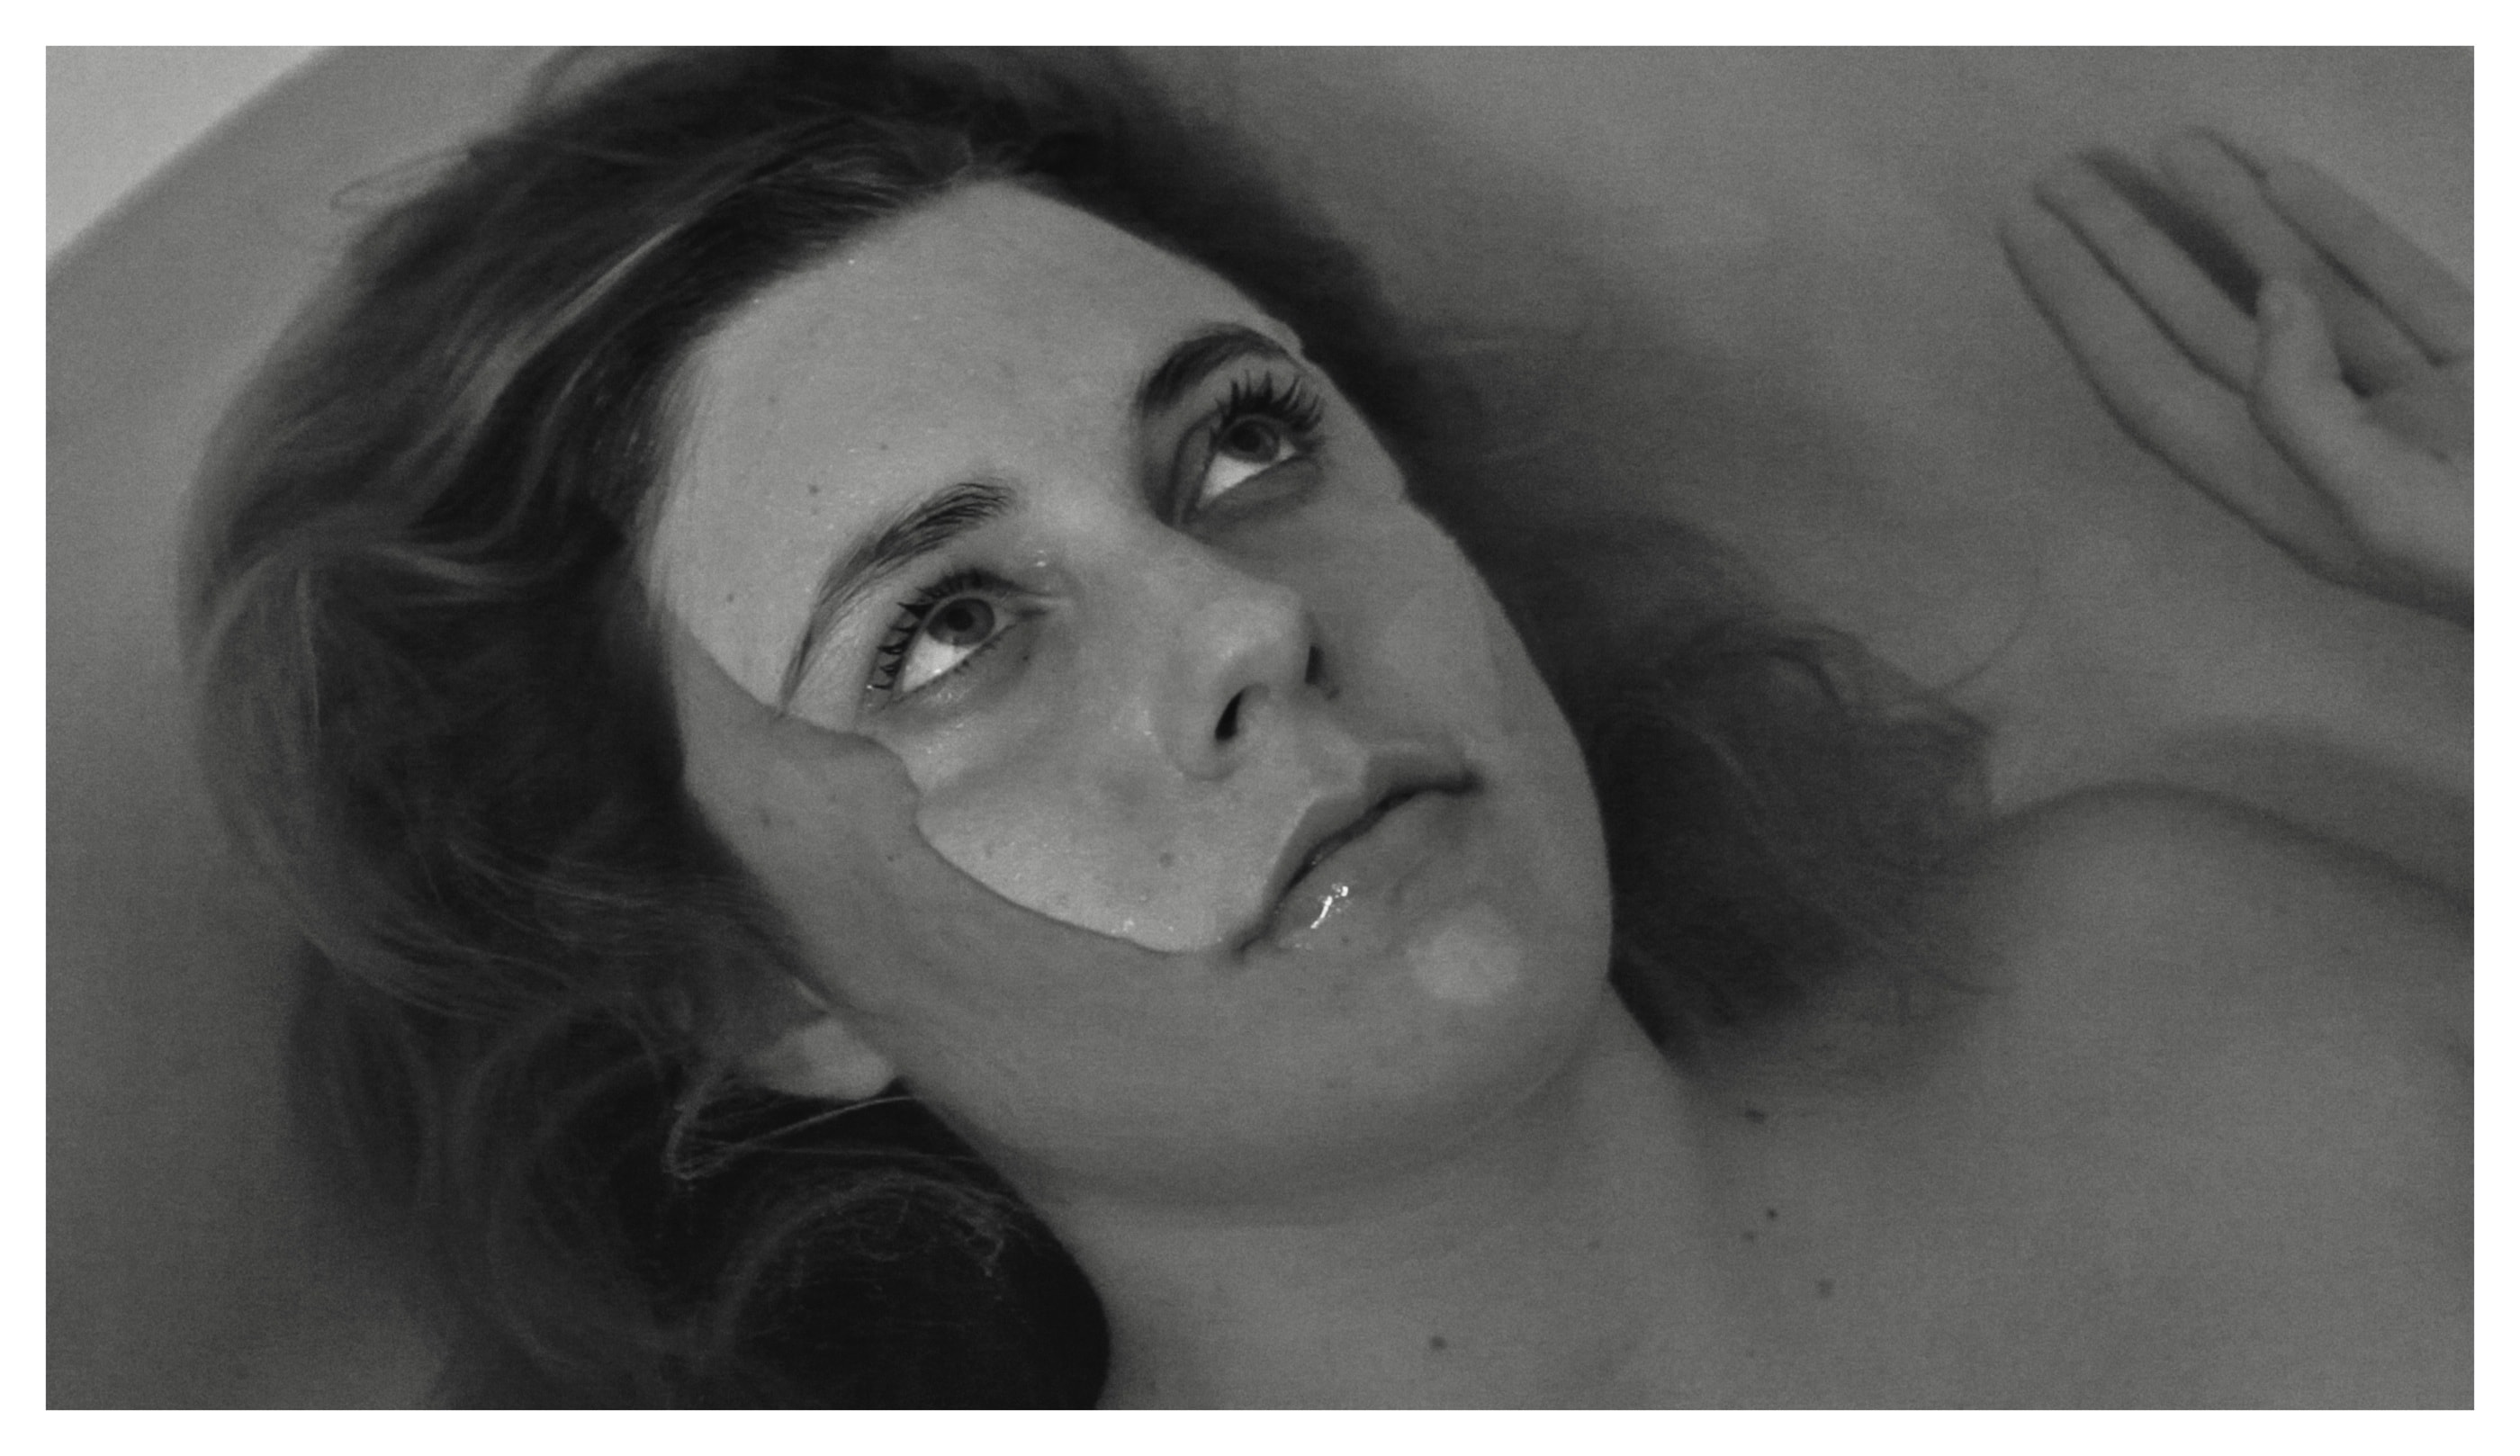 """The Most Important Movie In The World: Frances Ha """"Greta Gerwig in a bathtub thinking about life"""""""